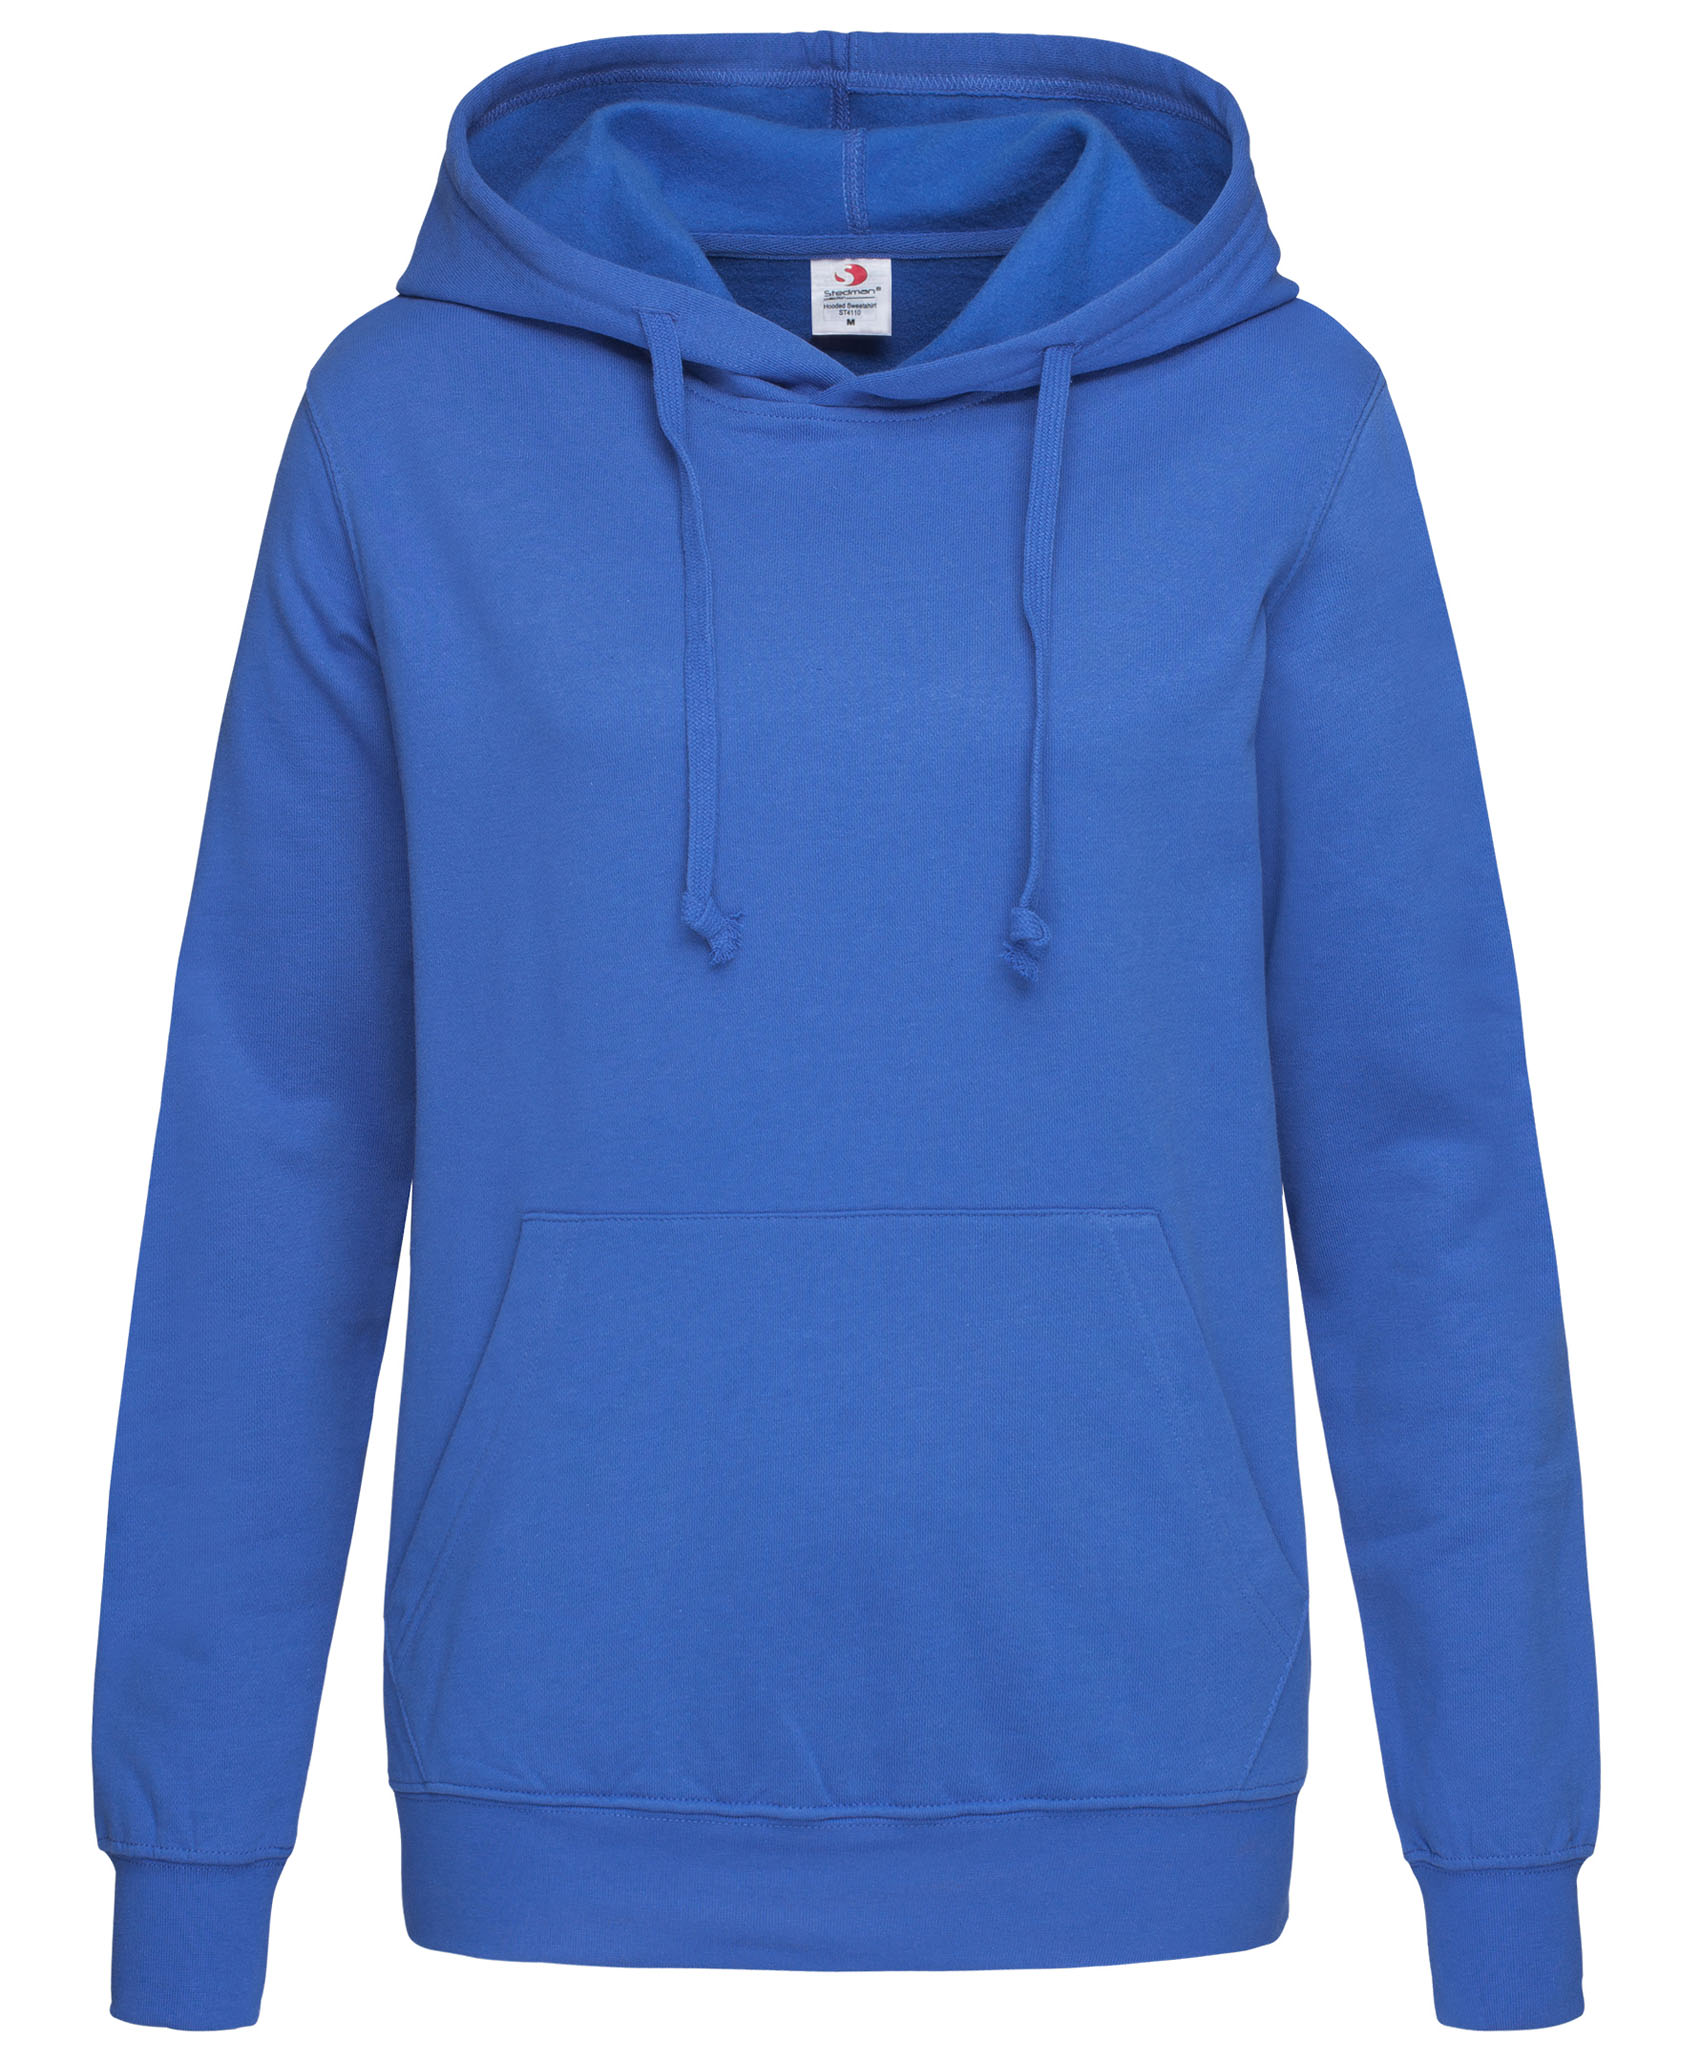 Stedman Sweater Hooded for her